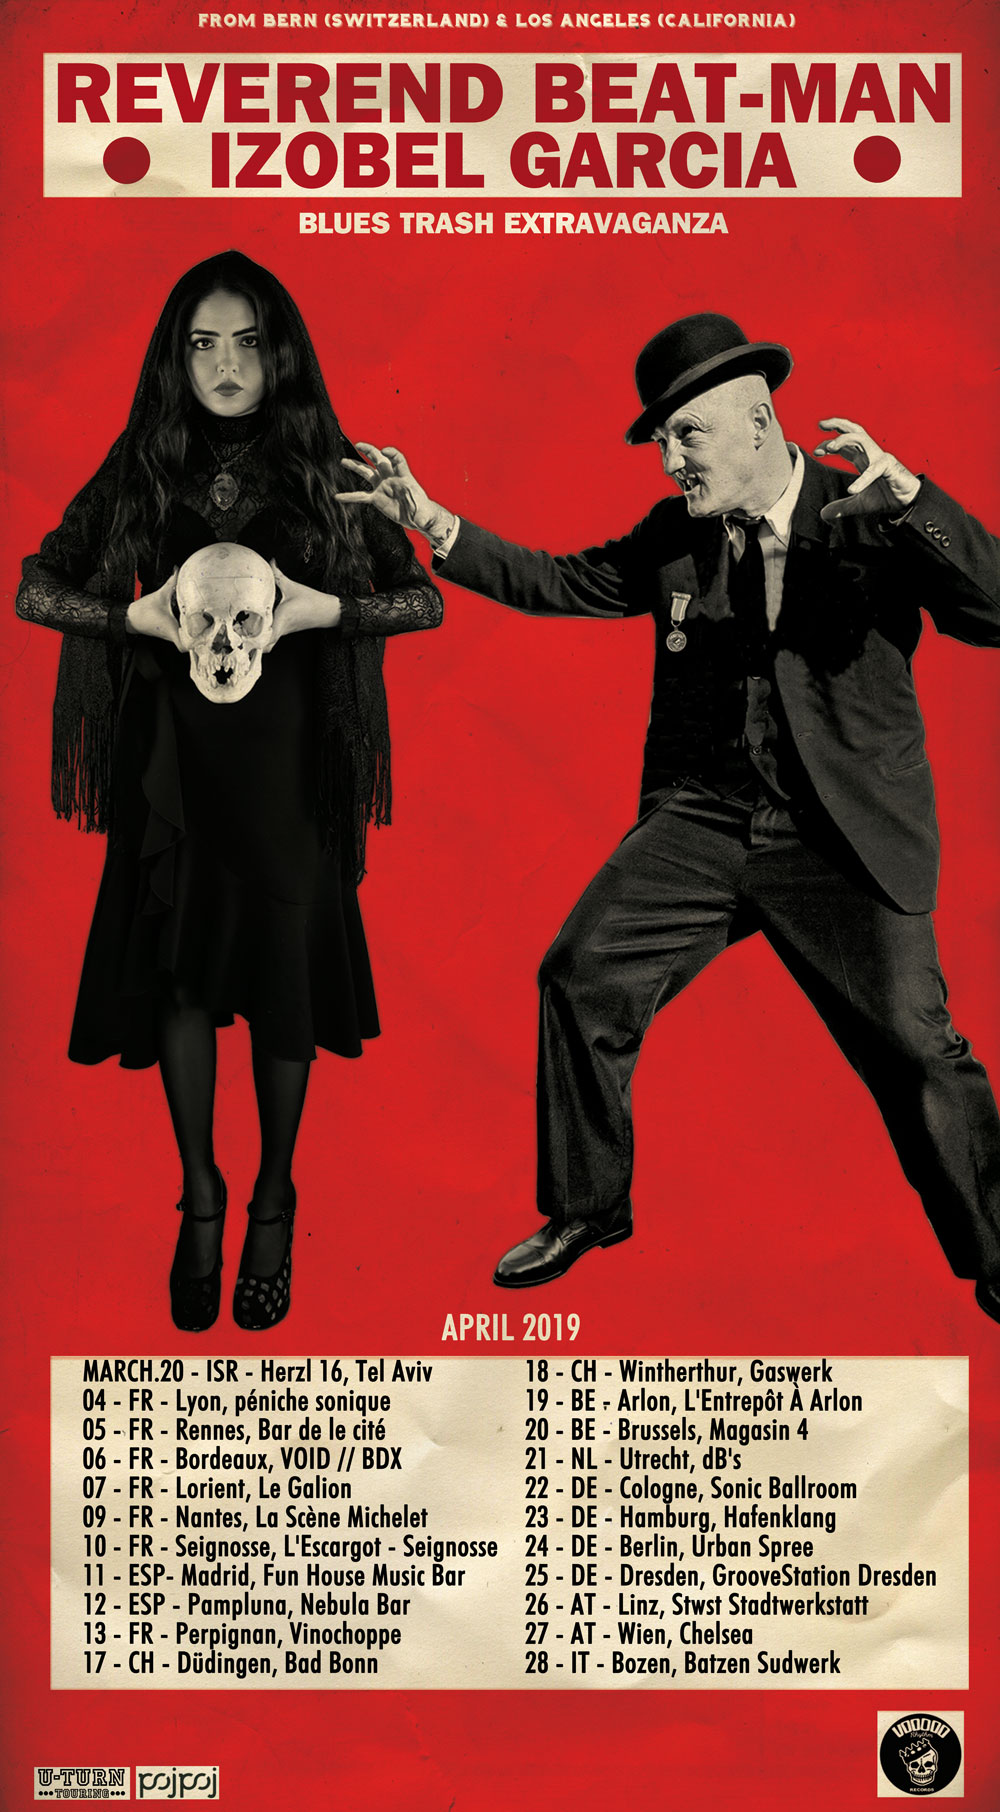 REVEREND BEAT MAN 2019 POSTER